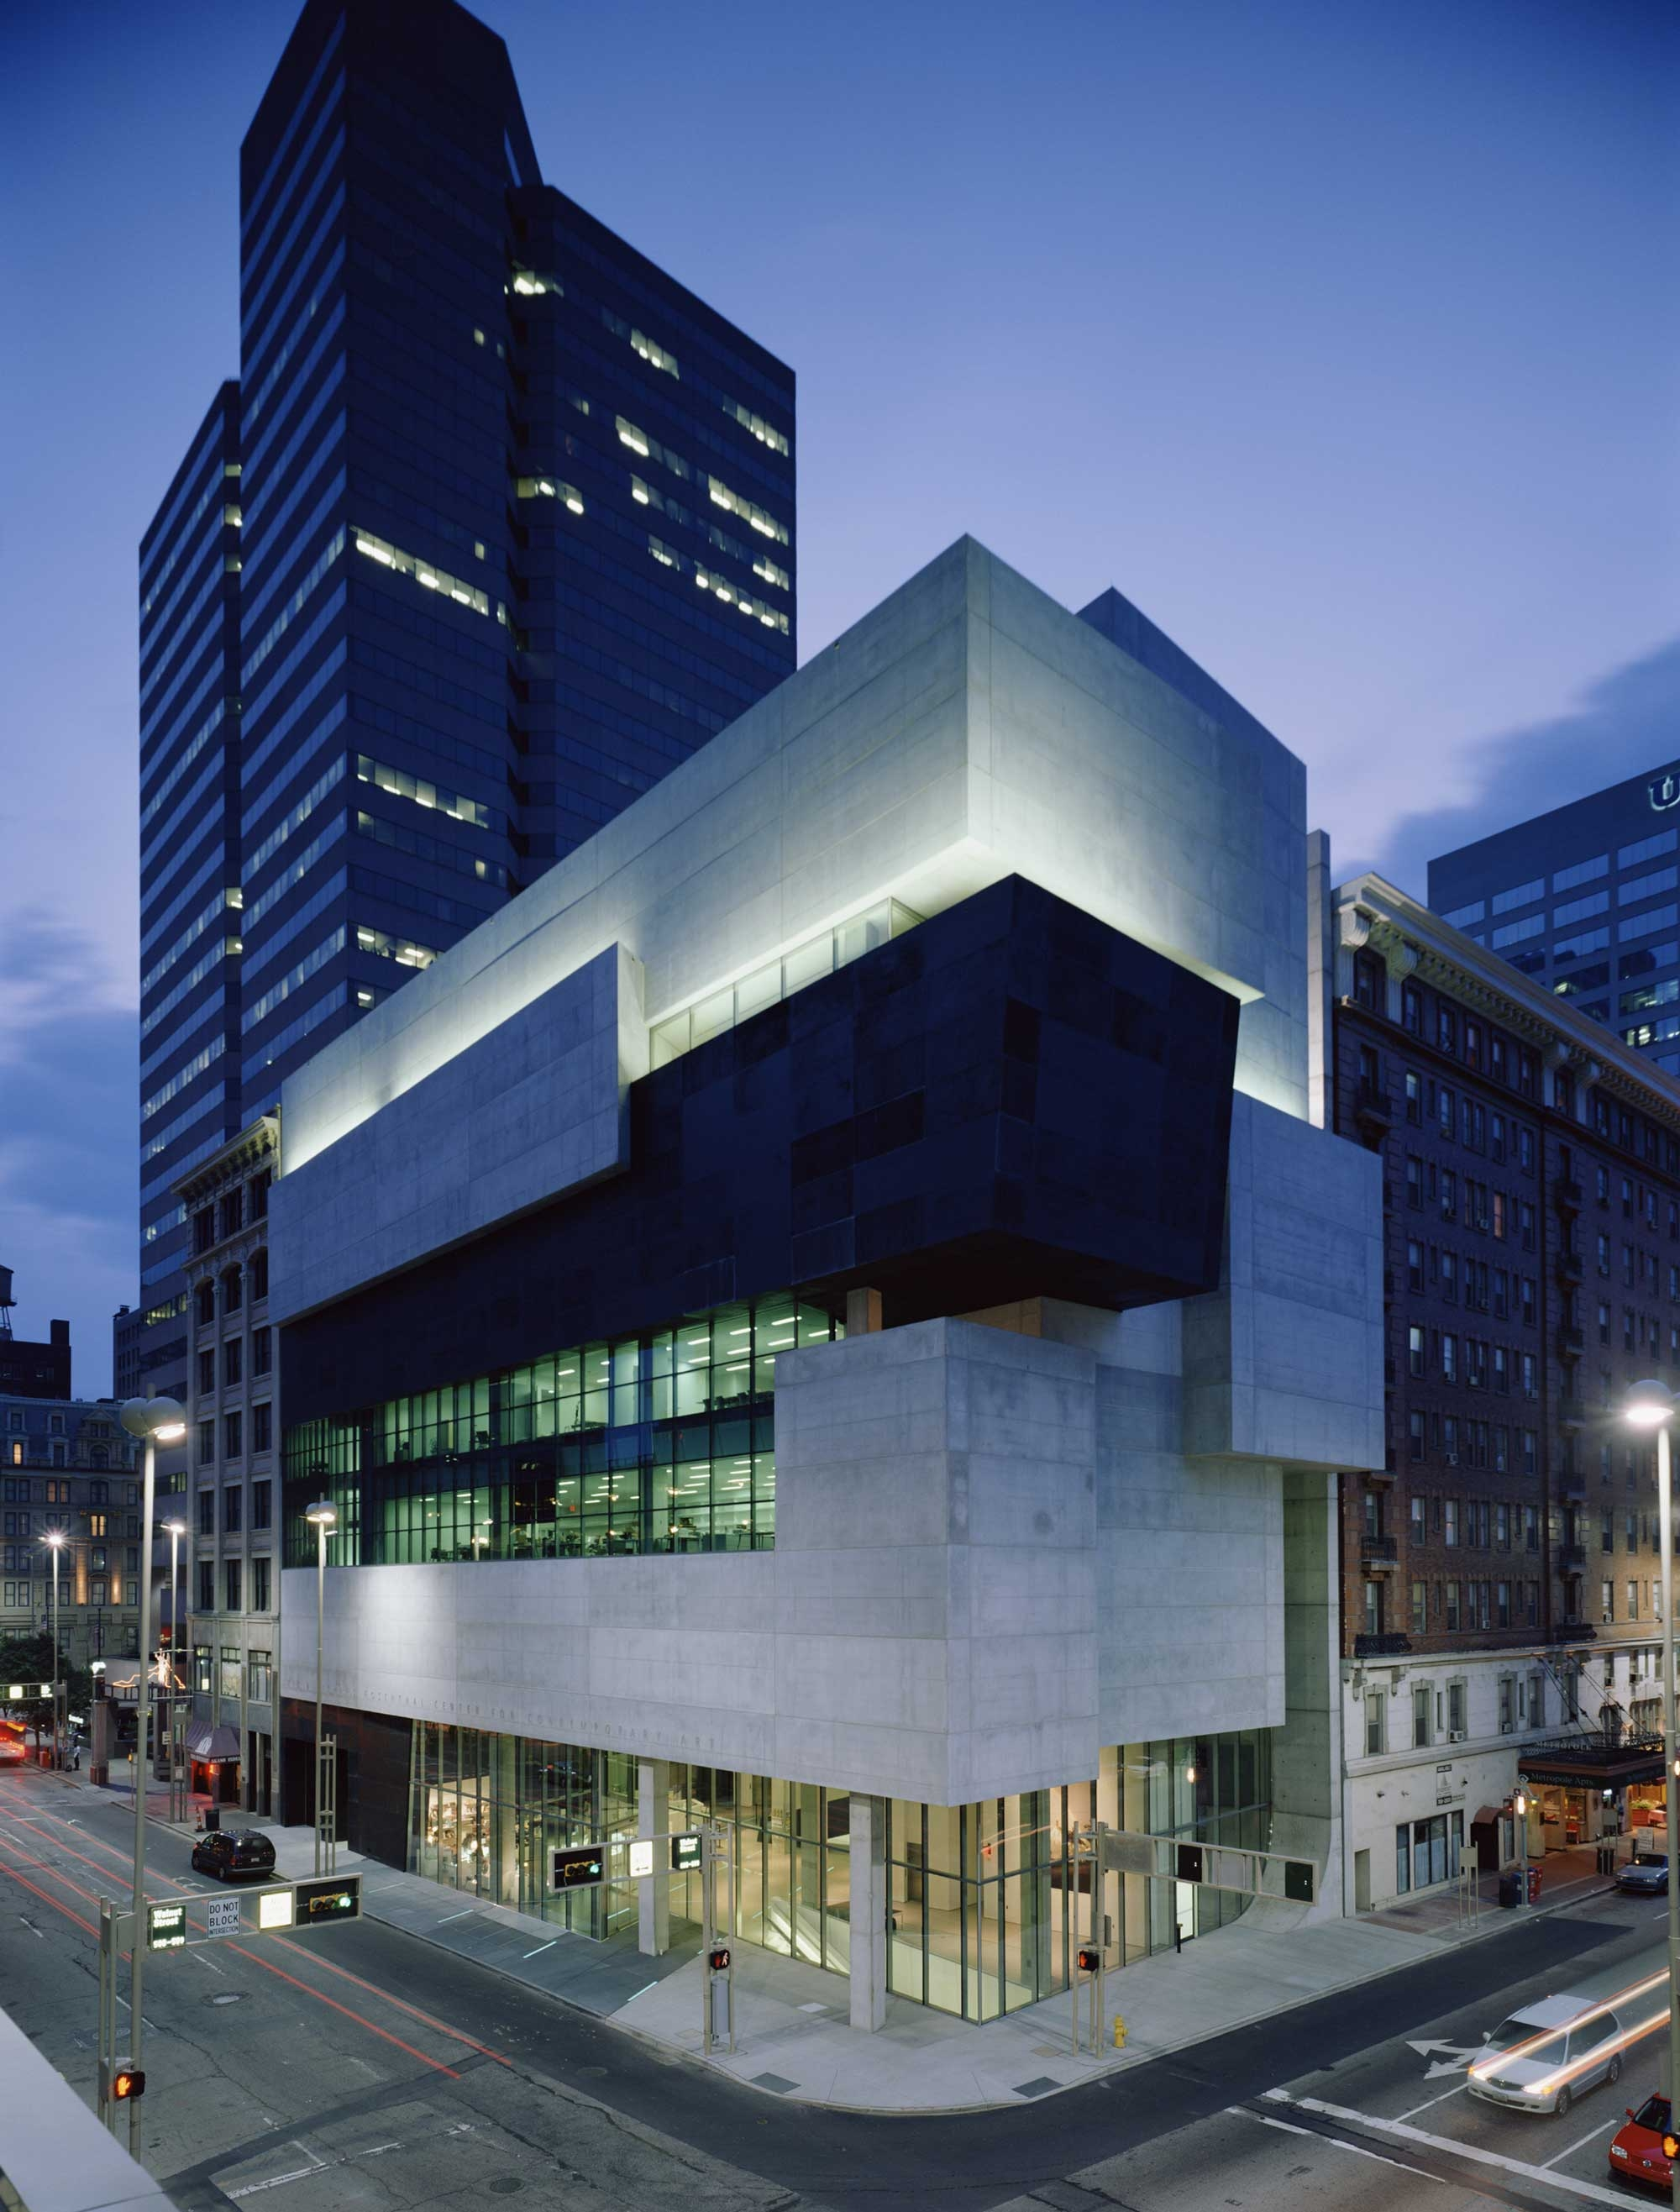 02 Contemporary Arts Center Cincinnati 2000x2633 c